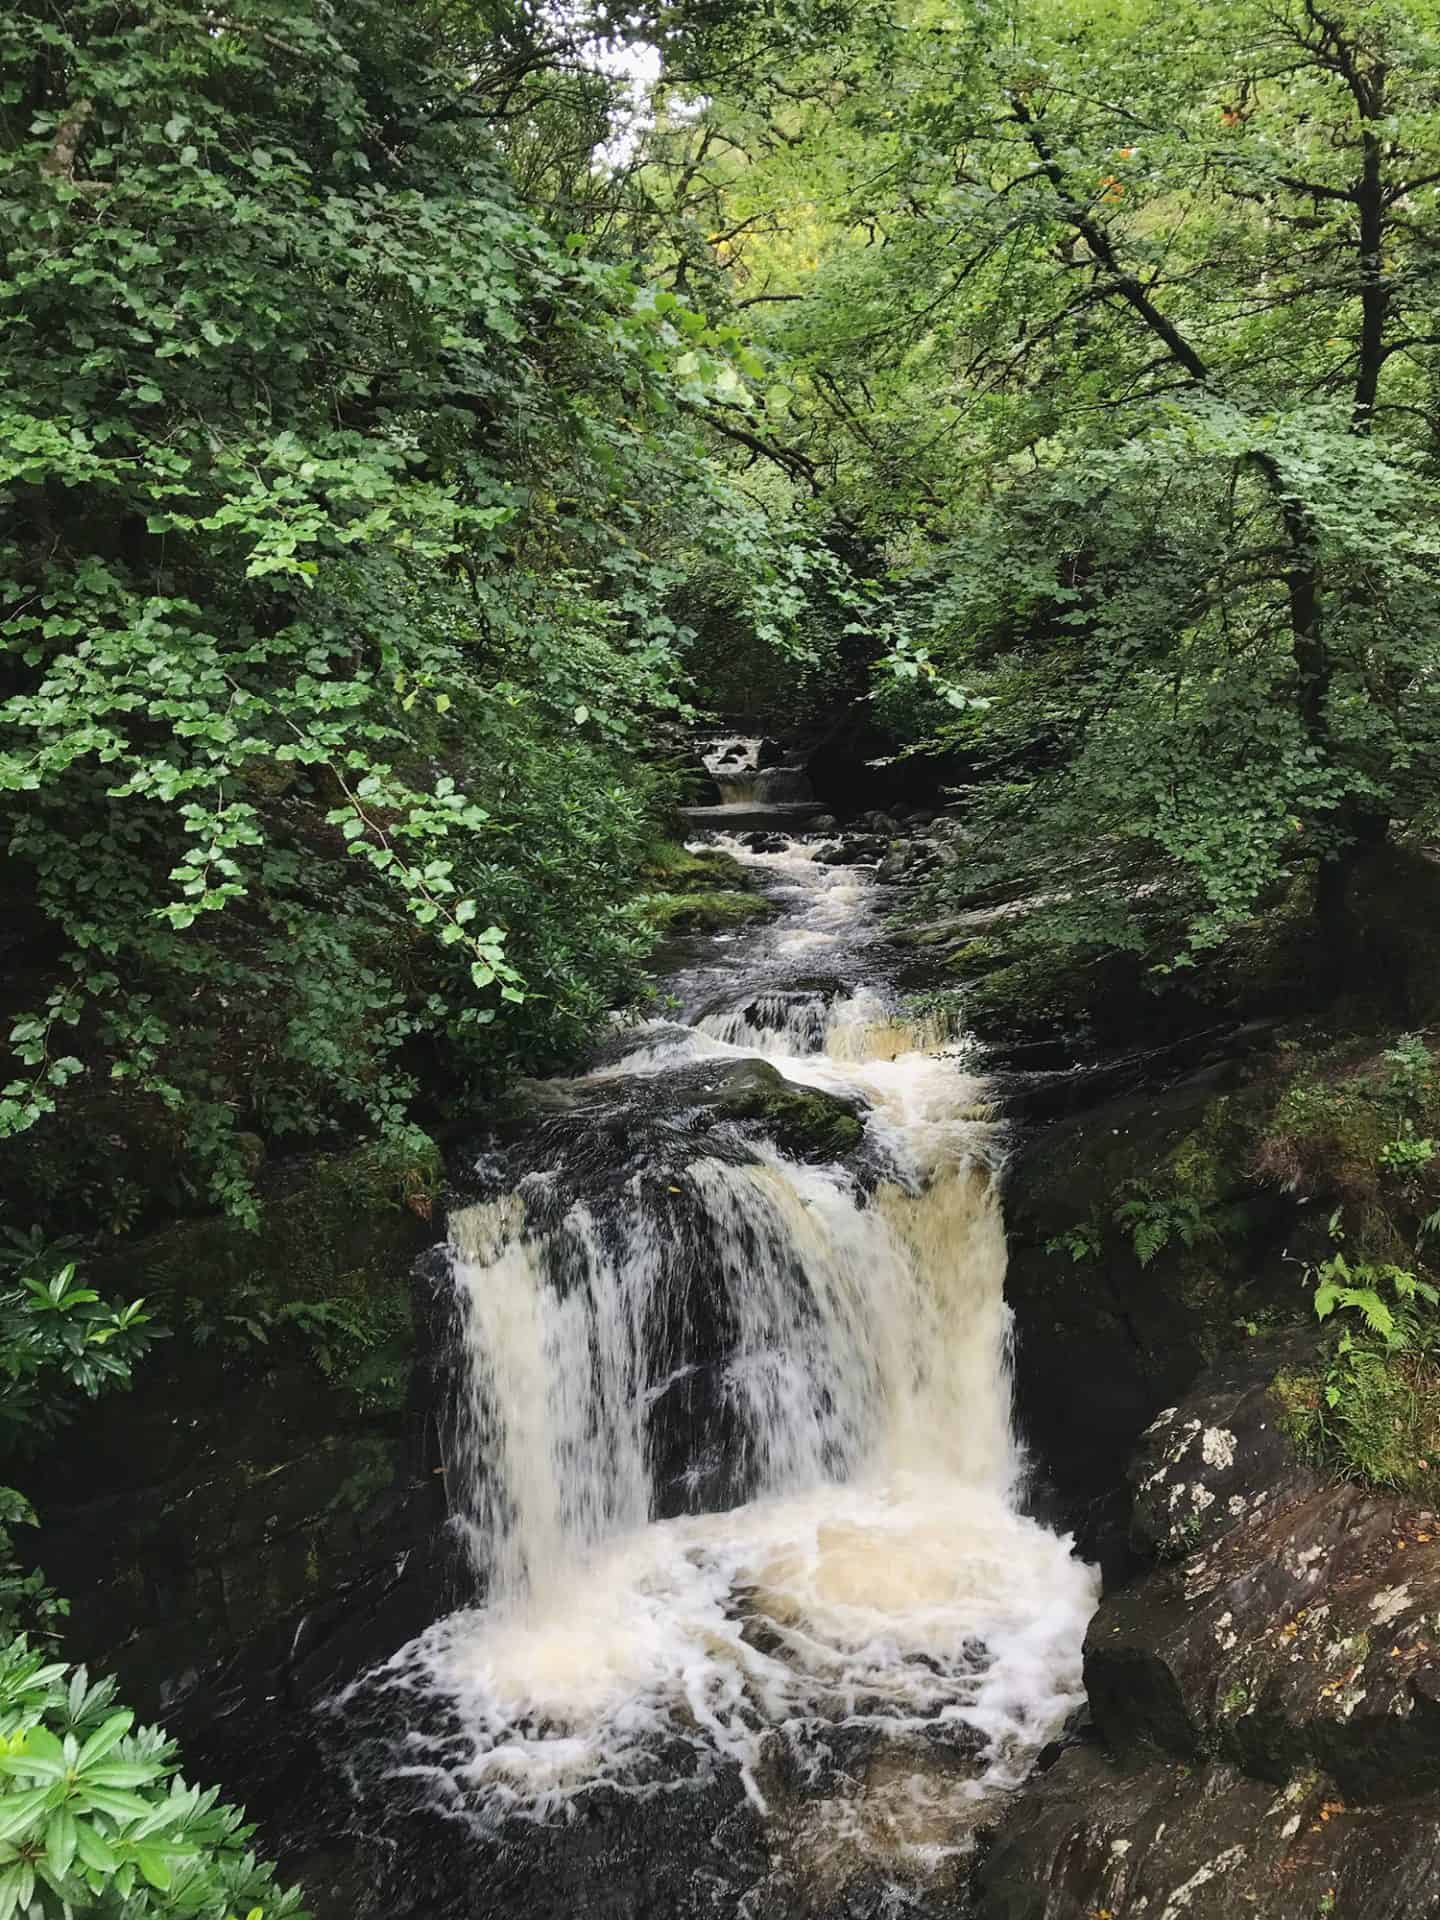 Torc Waterfall in Killarney National Park along Ireland's Ring of Kerry drive